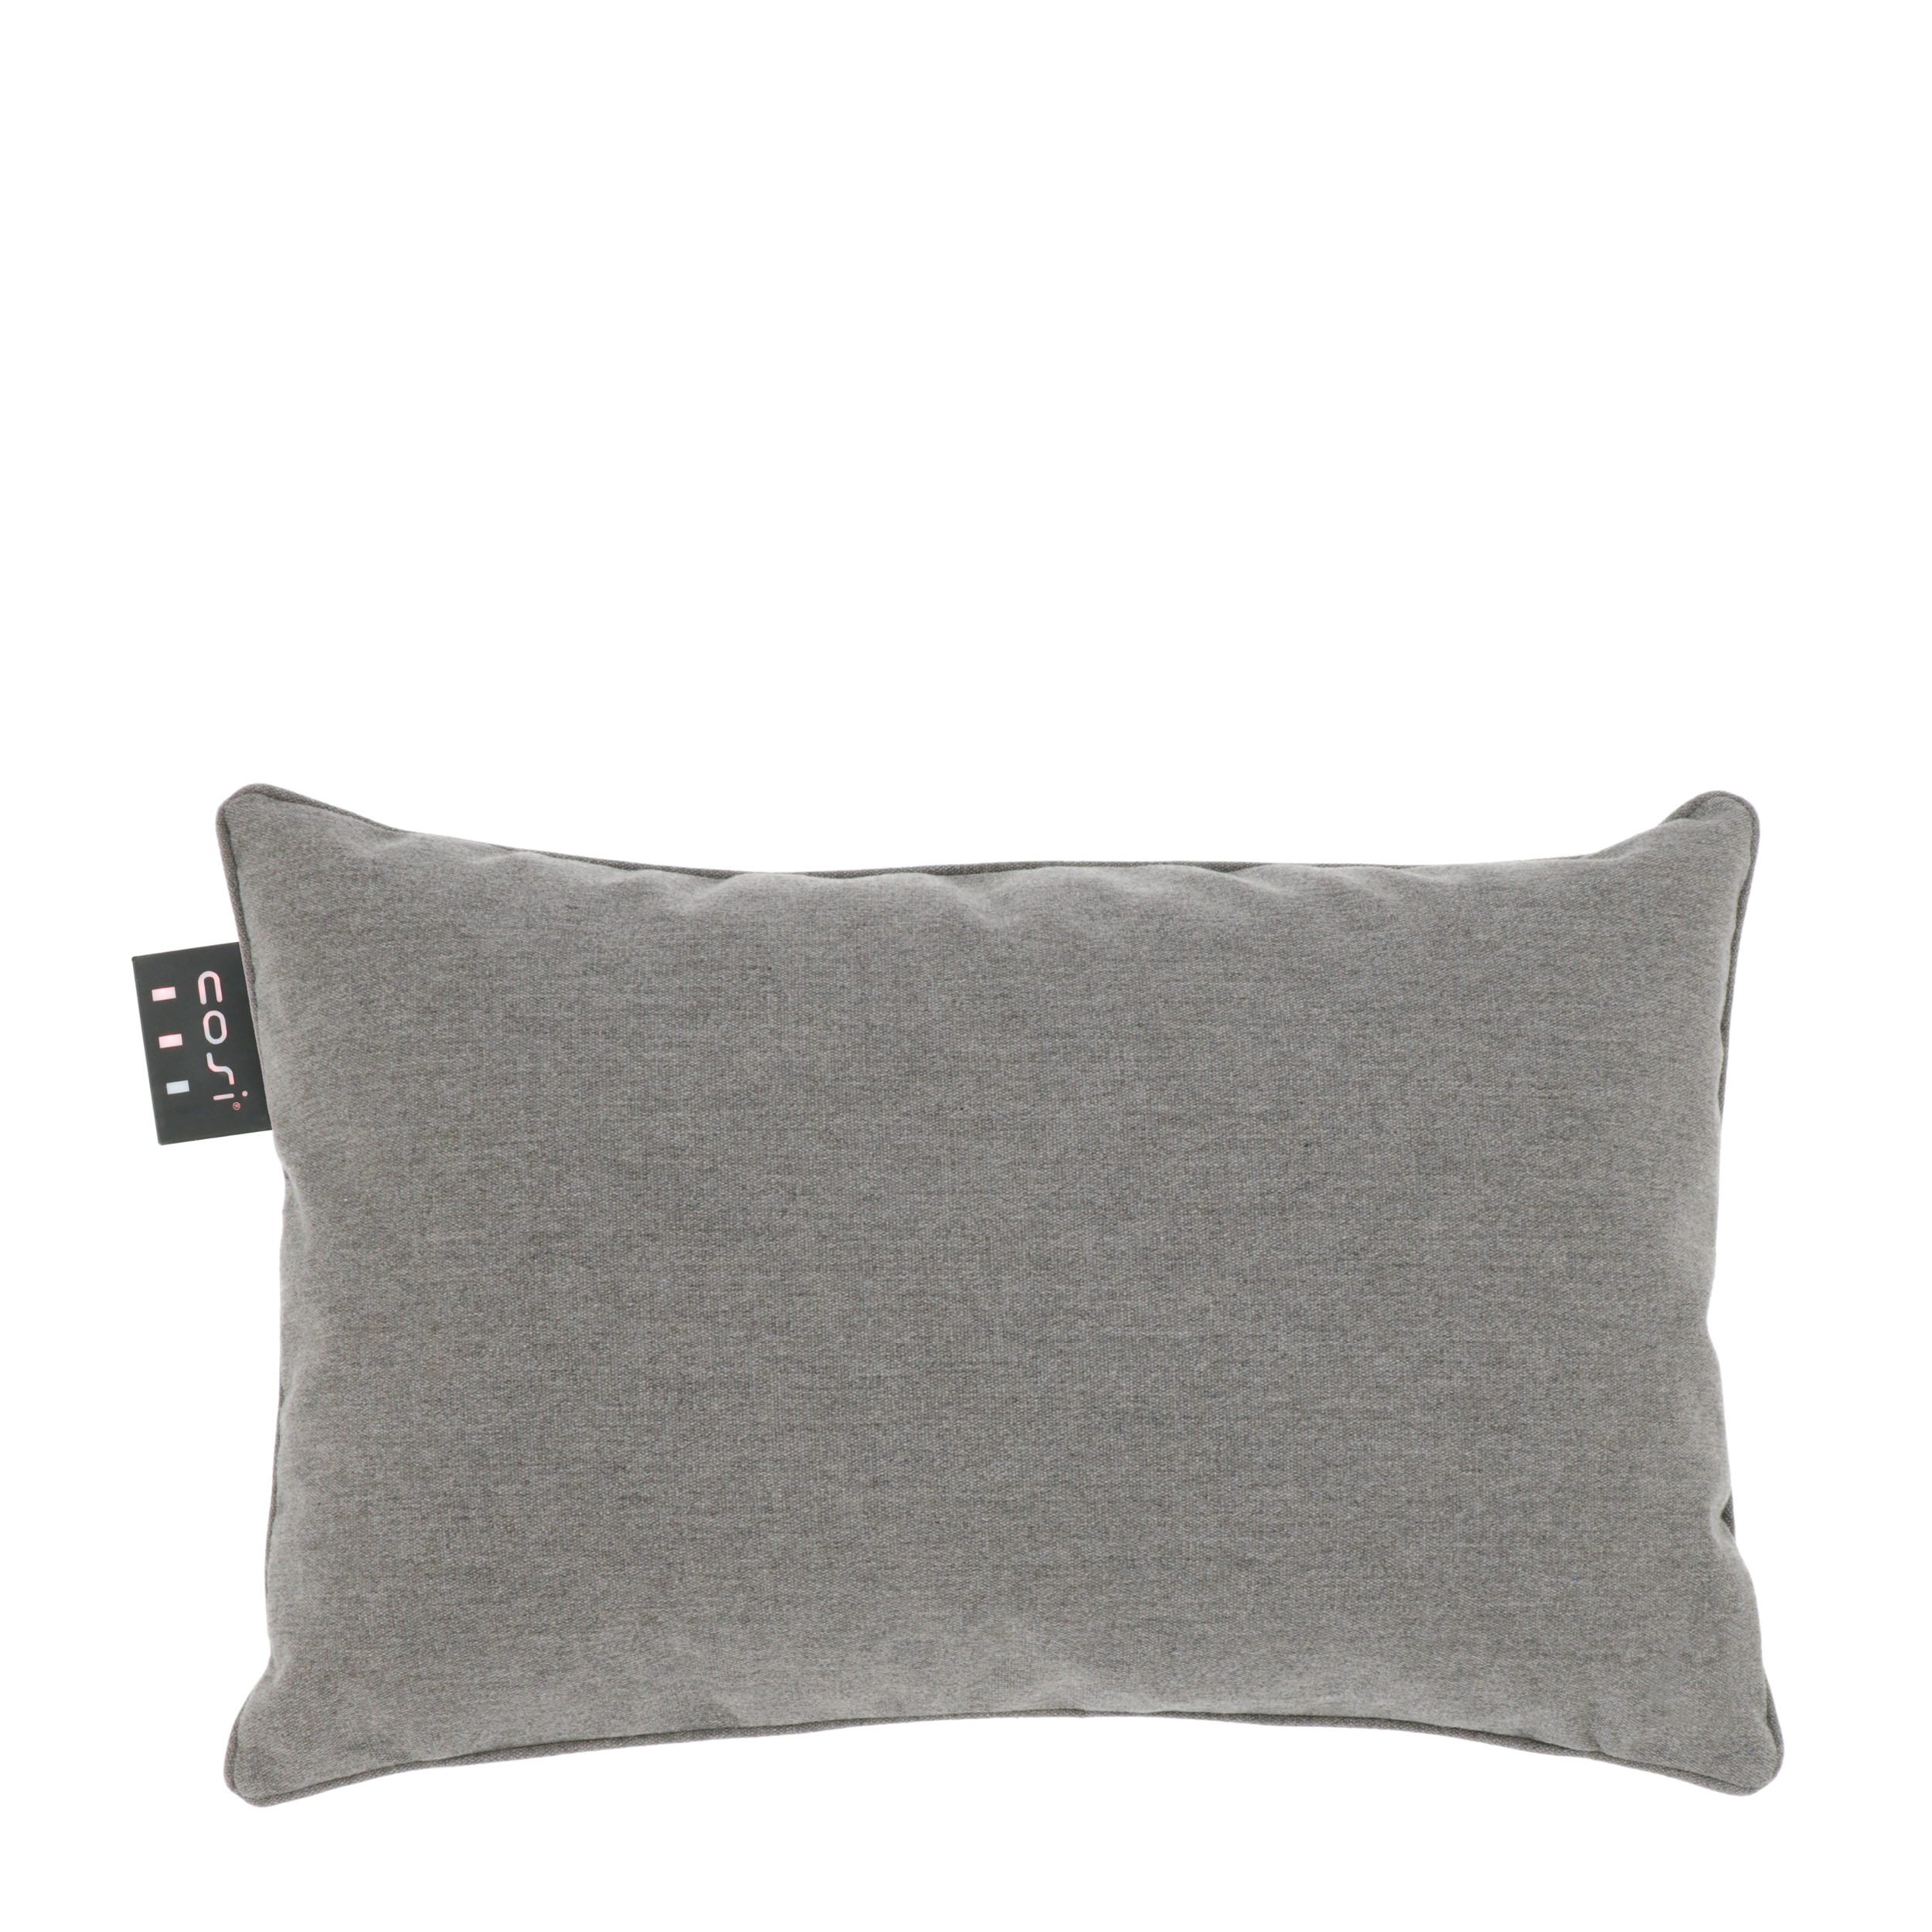 Cosipillow m/varme – solid 40x60cm